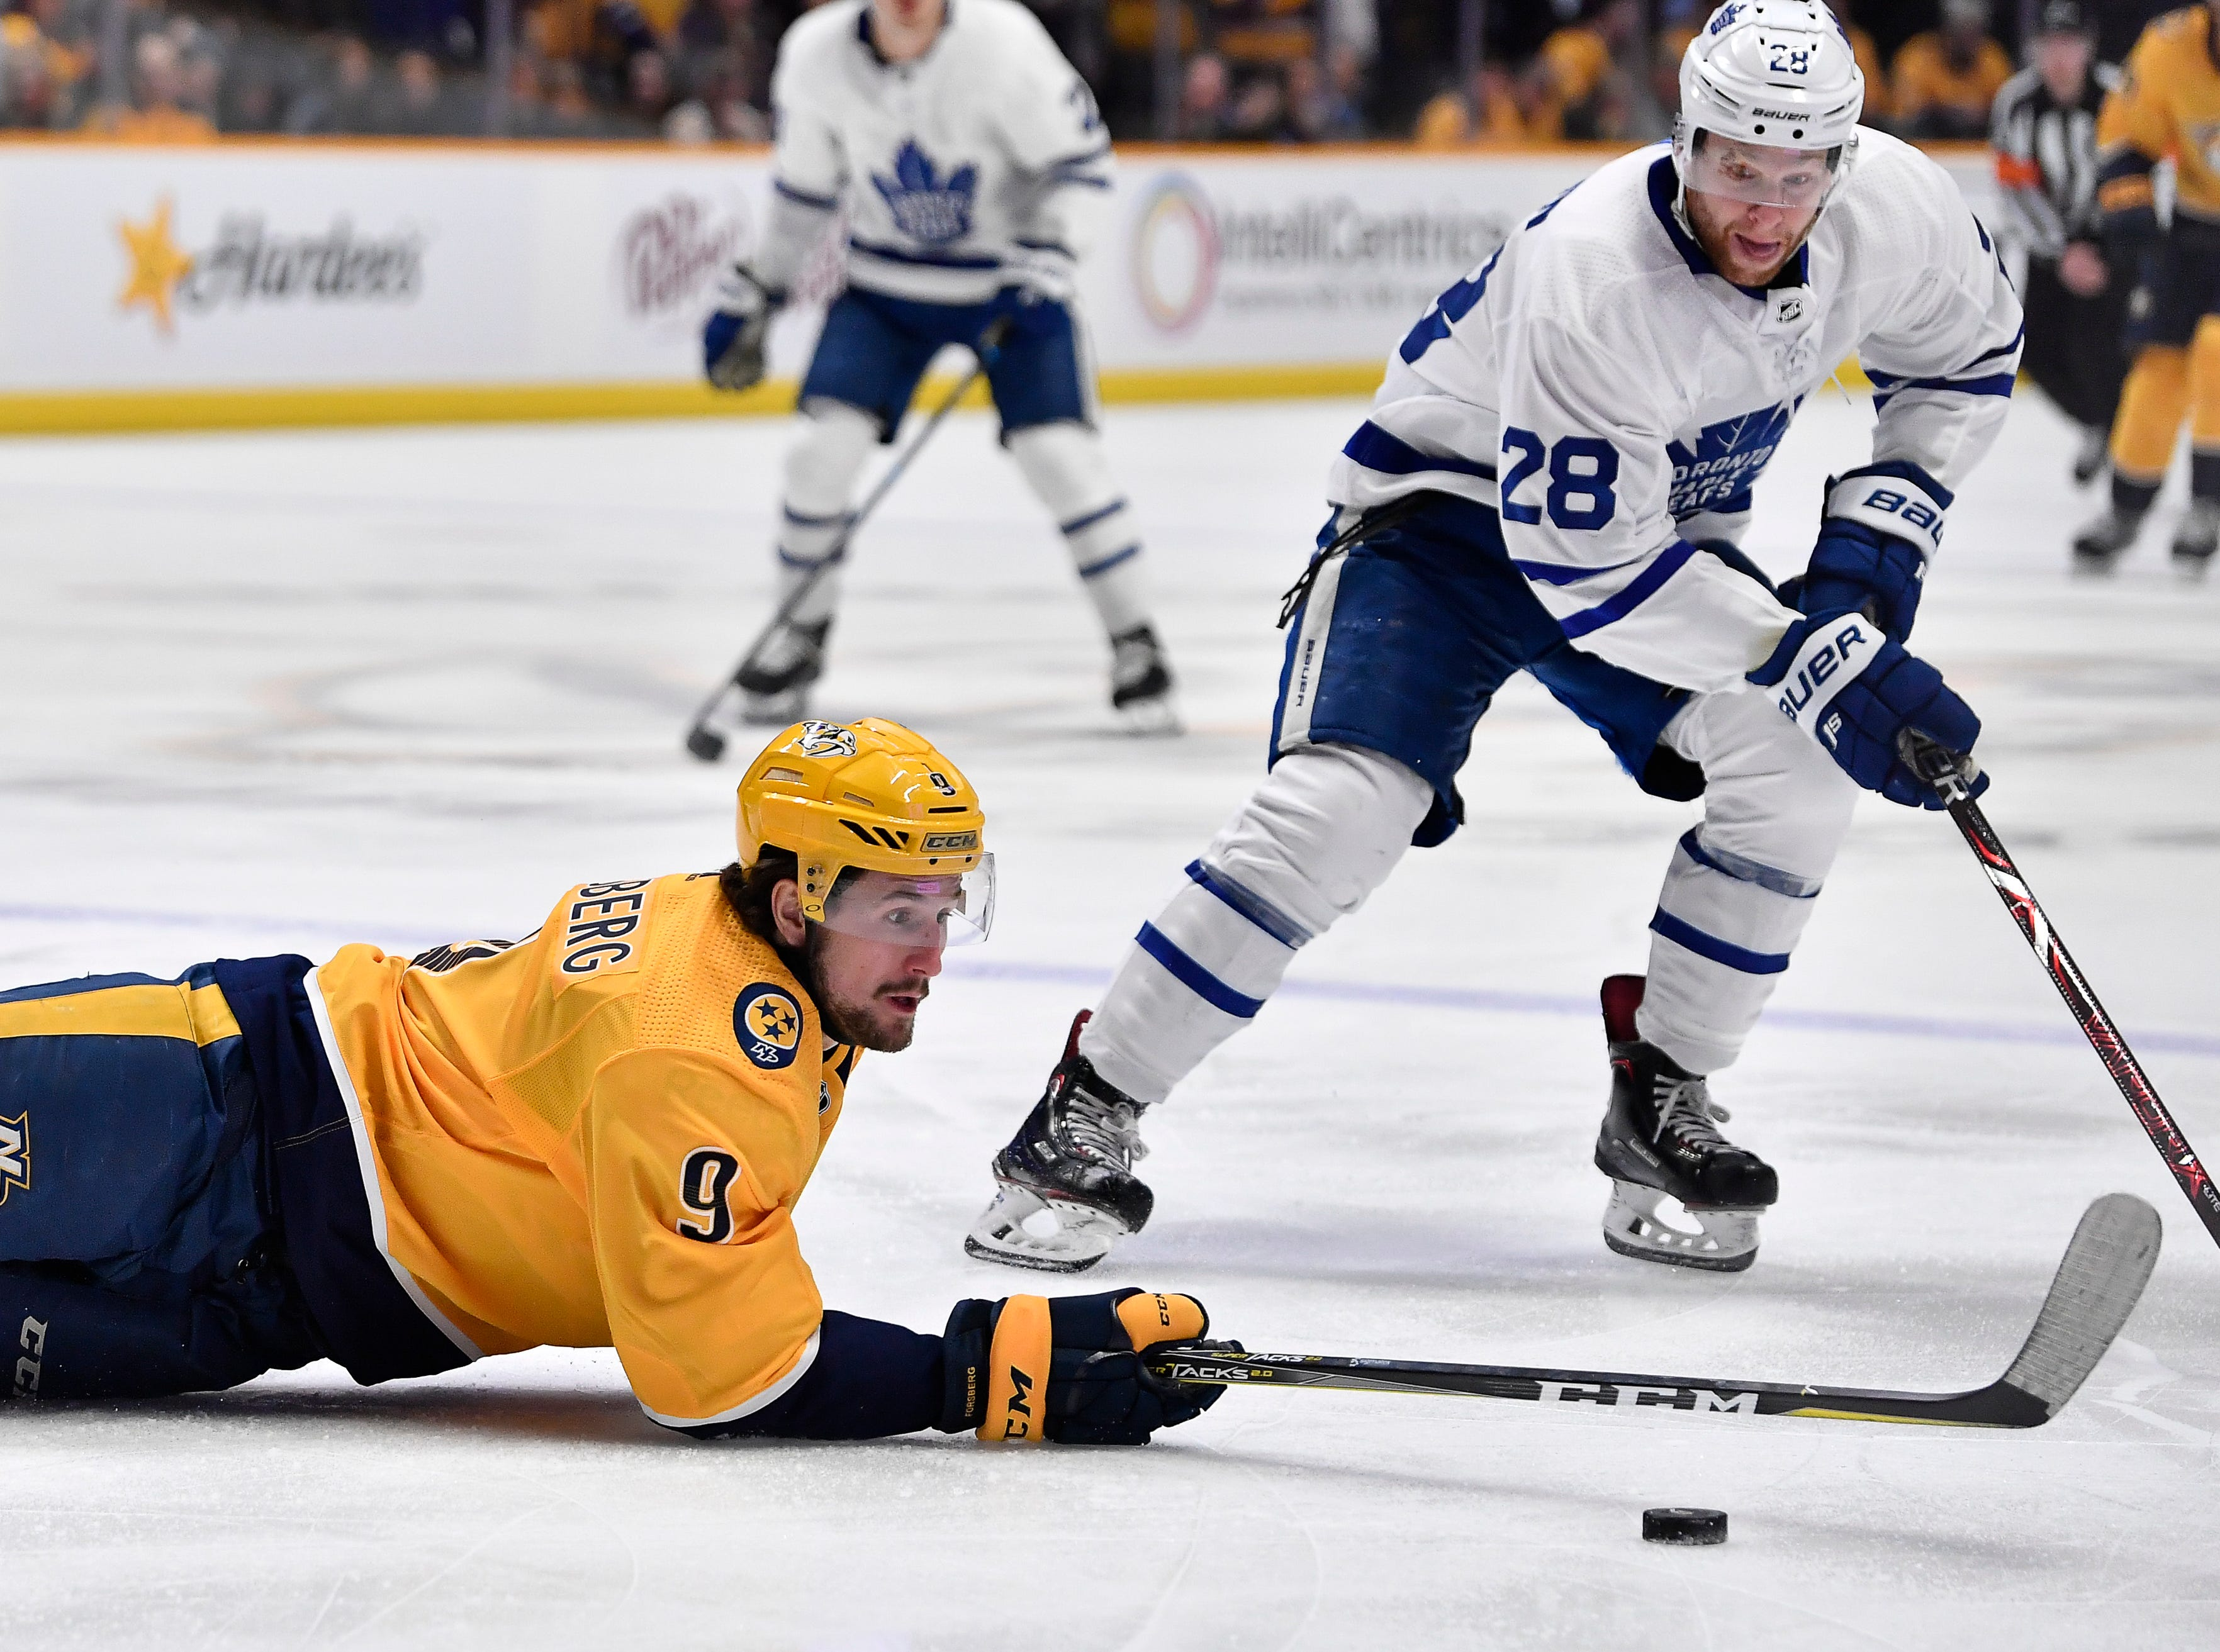 Predators left wing Filip Forsberg (9) falls to the ice as he reaches for a puck past Maple Leafs right wing Connor Brown (28) during the first period at Bridgestone Arena Tuesday, March 19, 2019 in Nashville, Tenn.